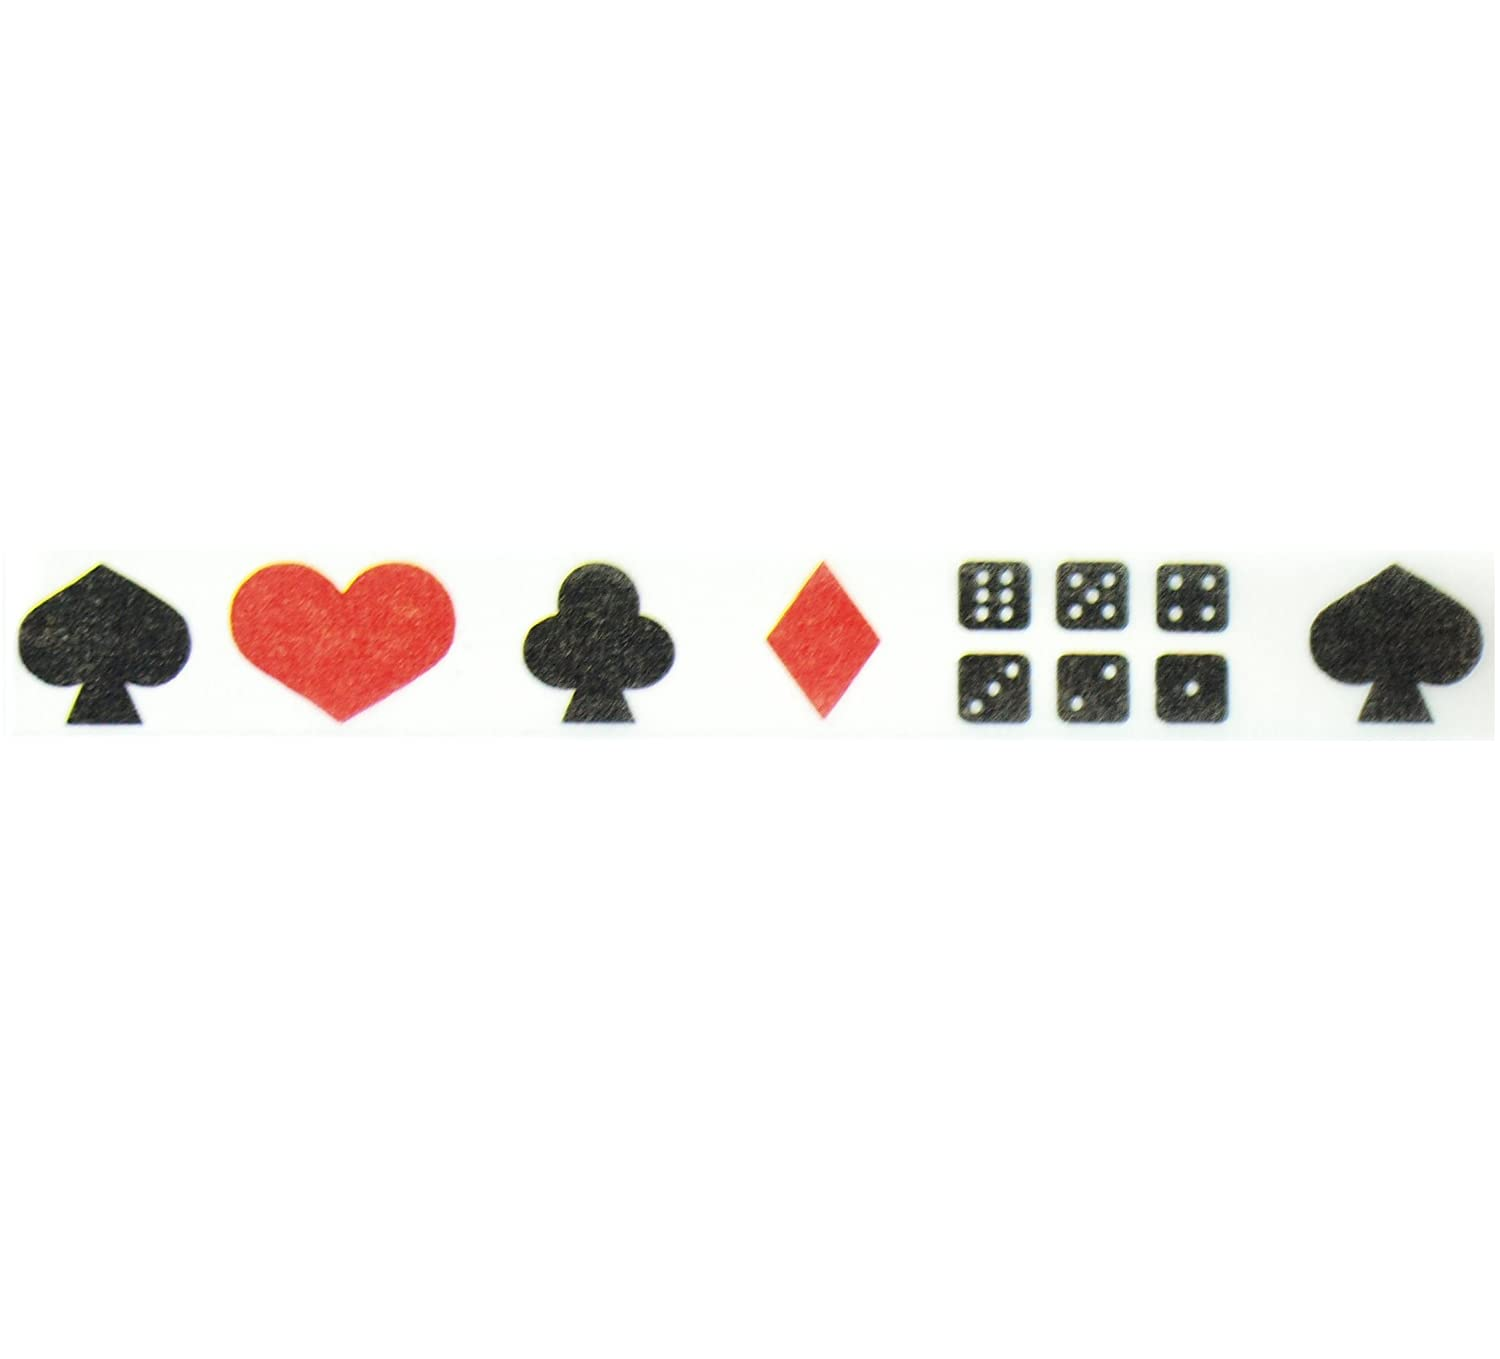 """Las Vegas Casino Washi Tape (1 Roll - 9/16"""" wide x 10.95 yards long) - Magic Party Supplies, Playing Cards Clear Tape, Black & Red Hearts, Spades, Clubs & Diamonds Sticky Tape"""